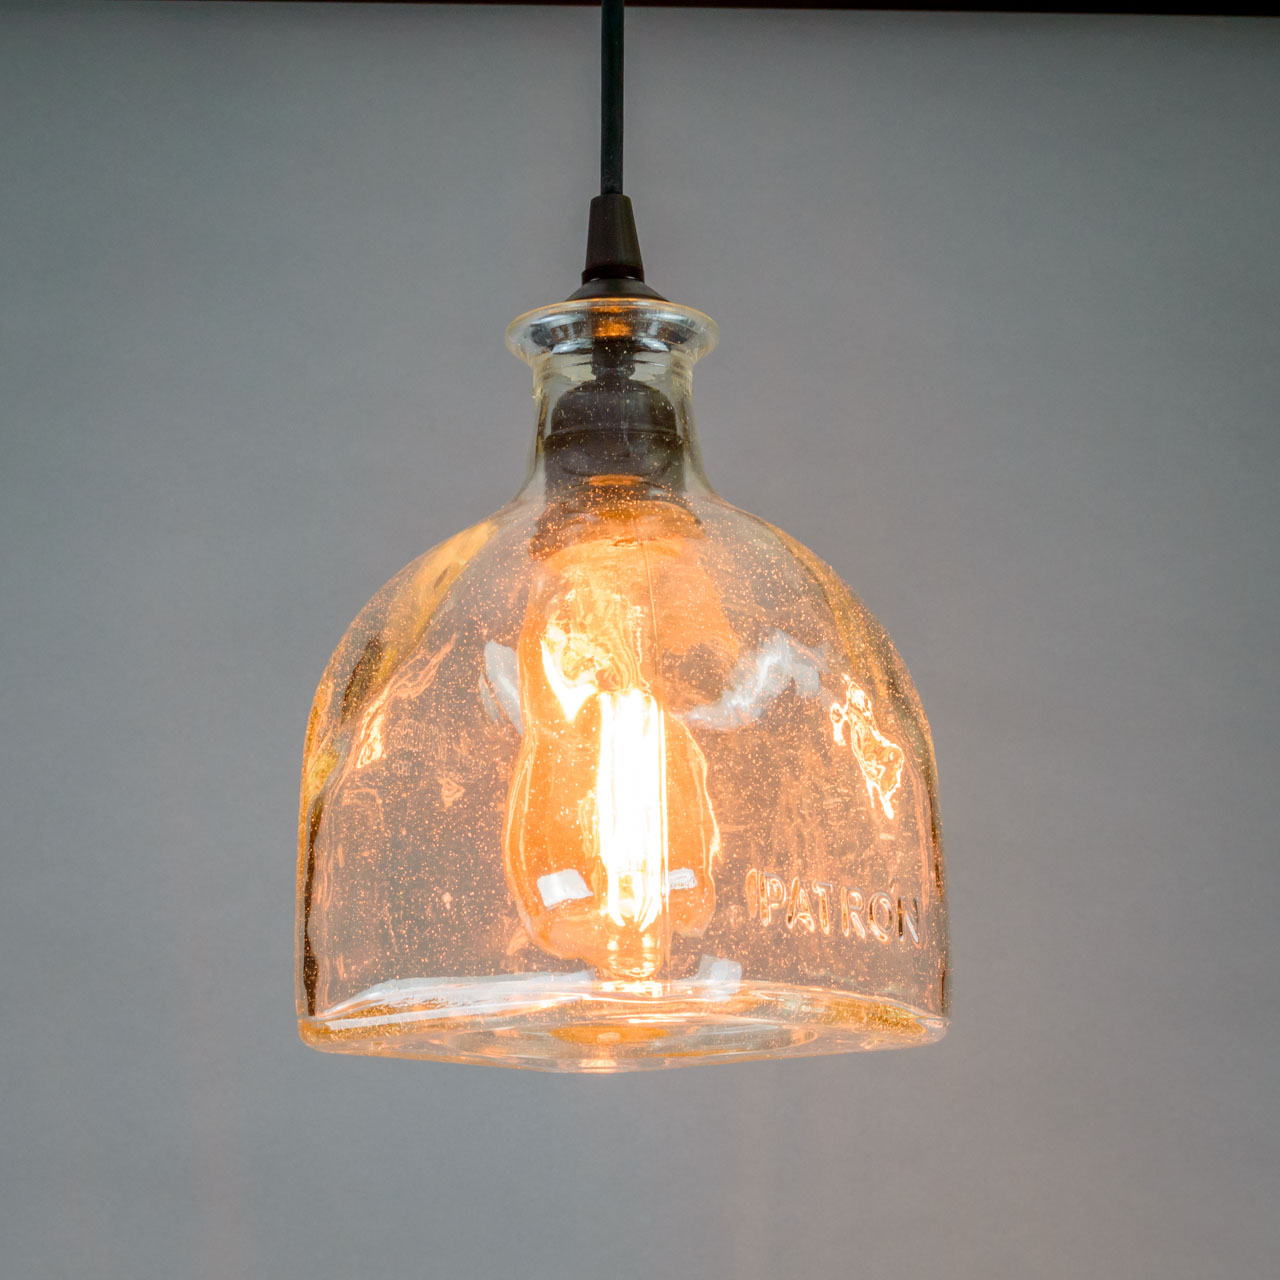 Bottle Pendant Light Easy Craft Ideas